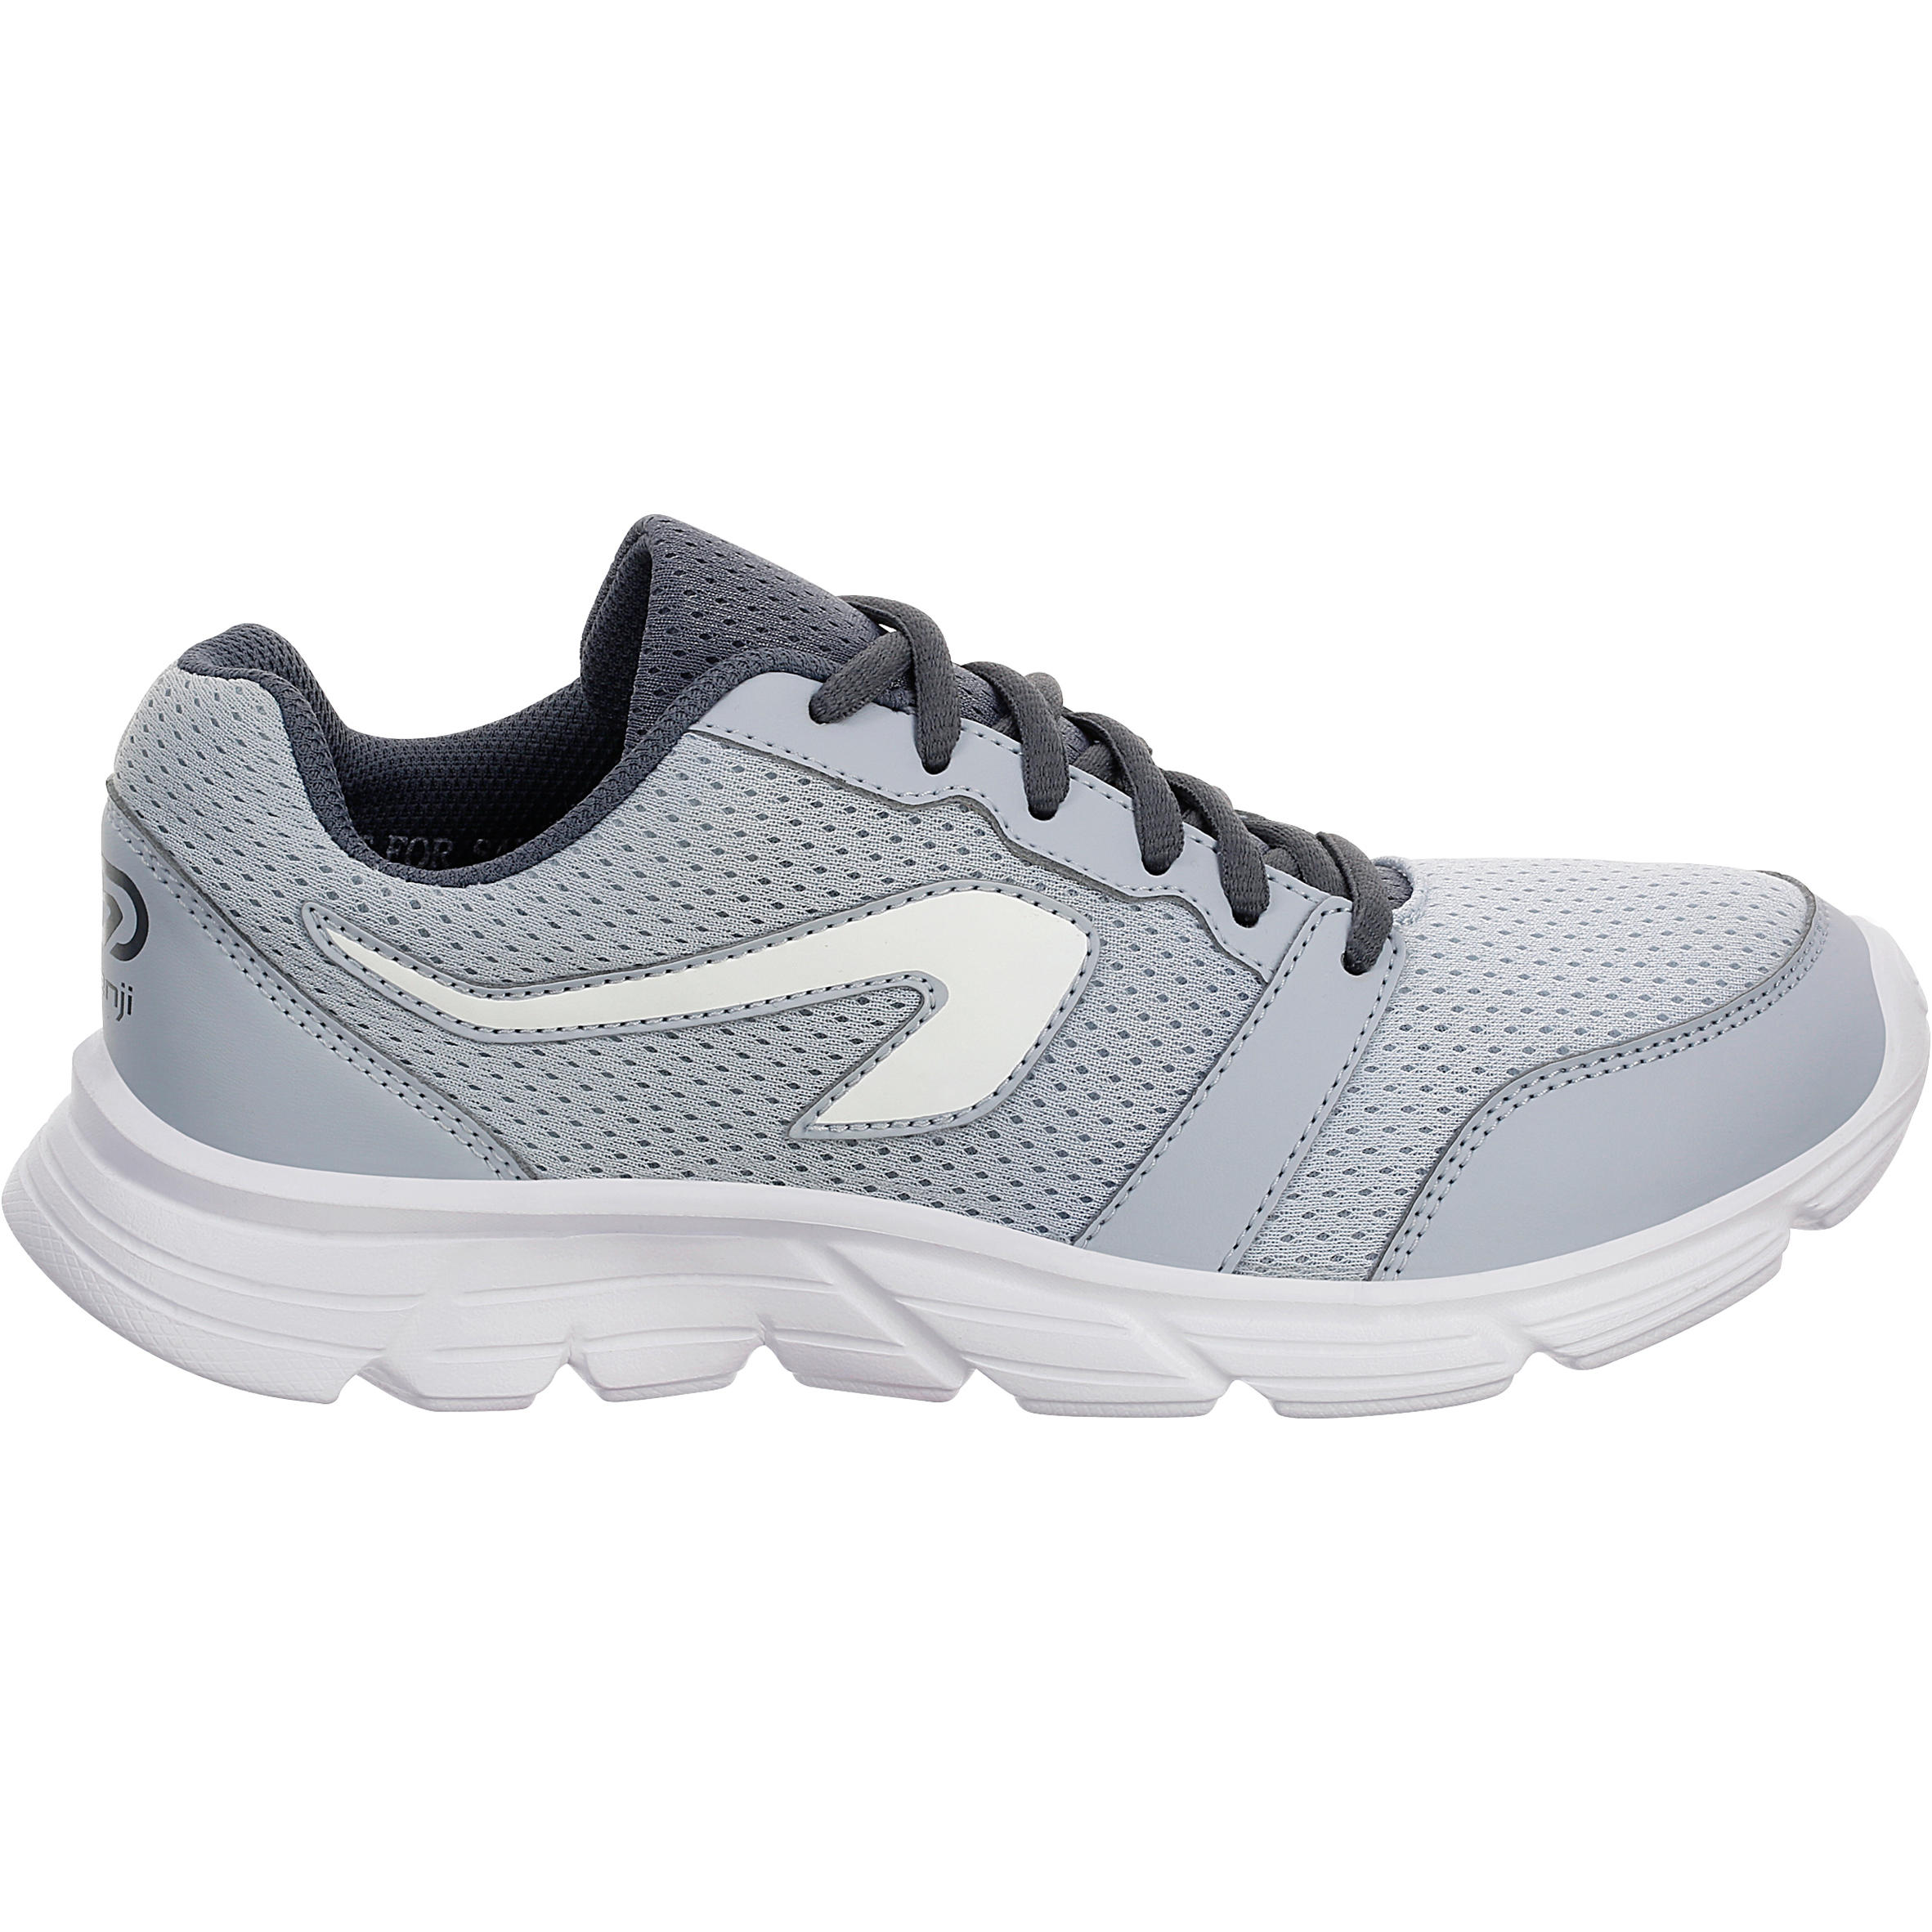 Chaussures Décathlon One Jogging Run Gris Femme WD2be9EHIY